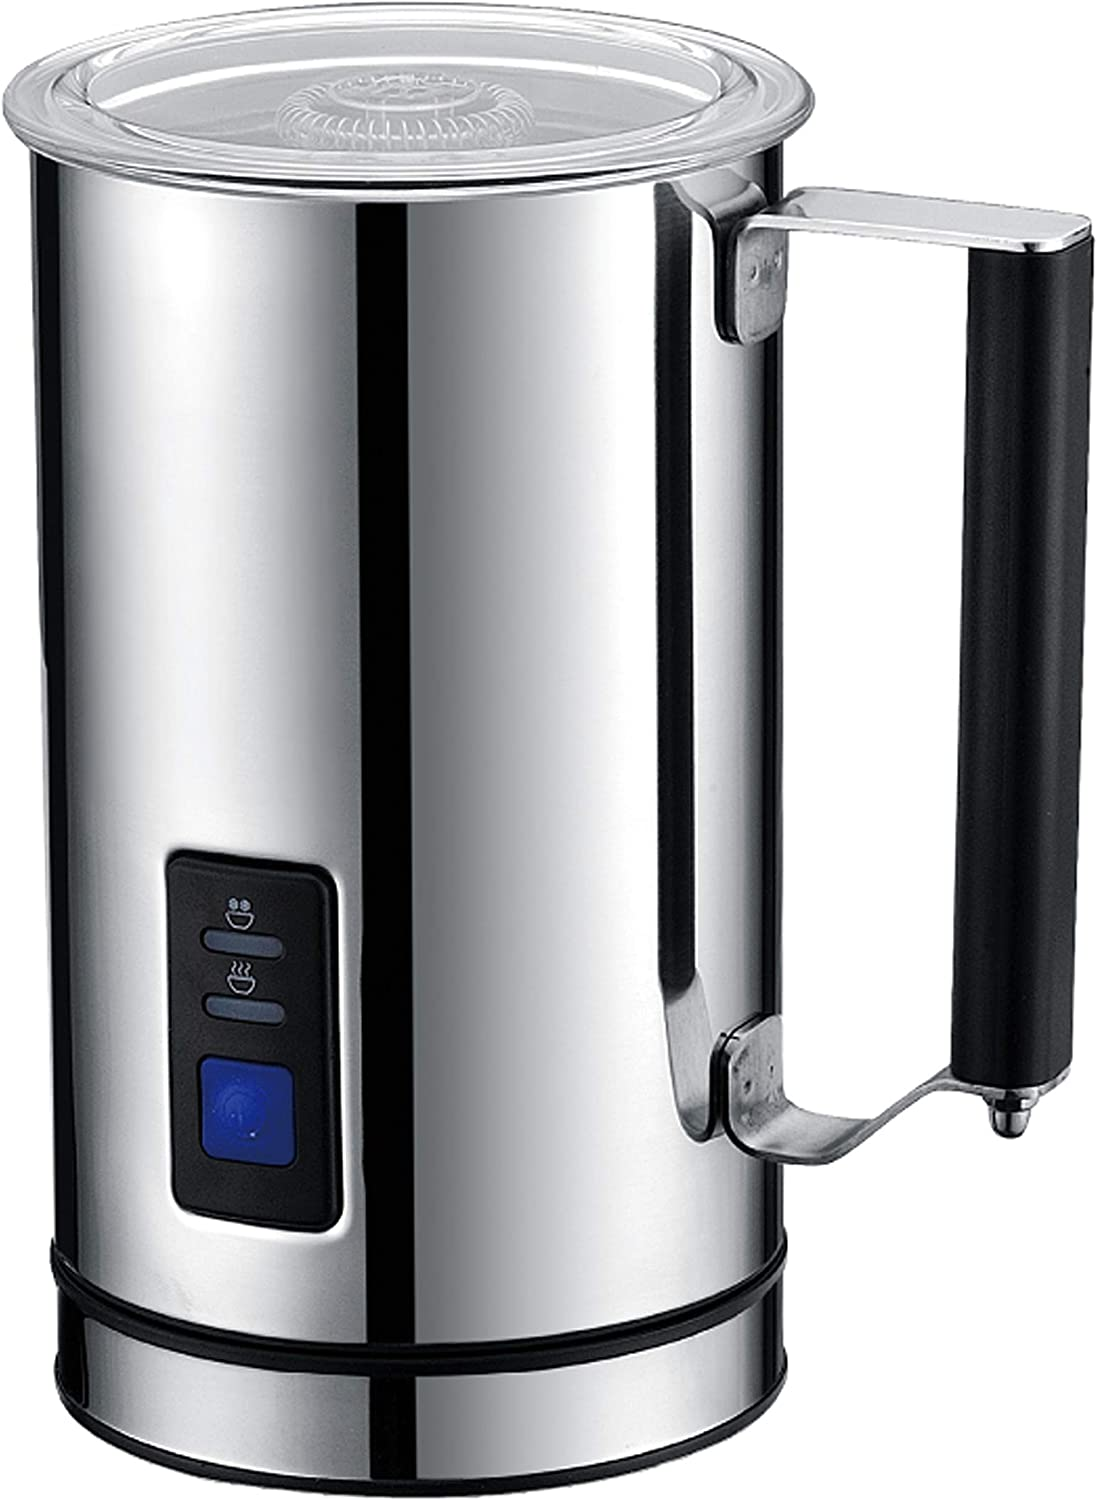 Kuissential Deluxe Automatic Milk Frother Image